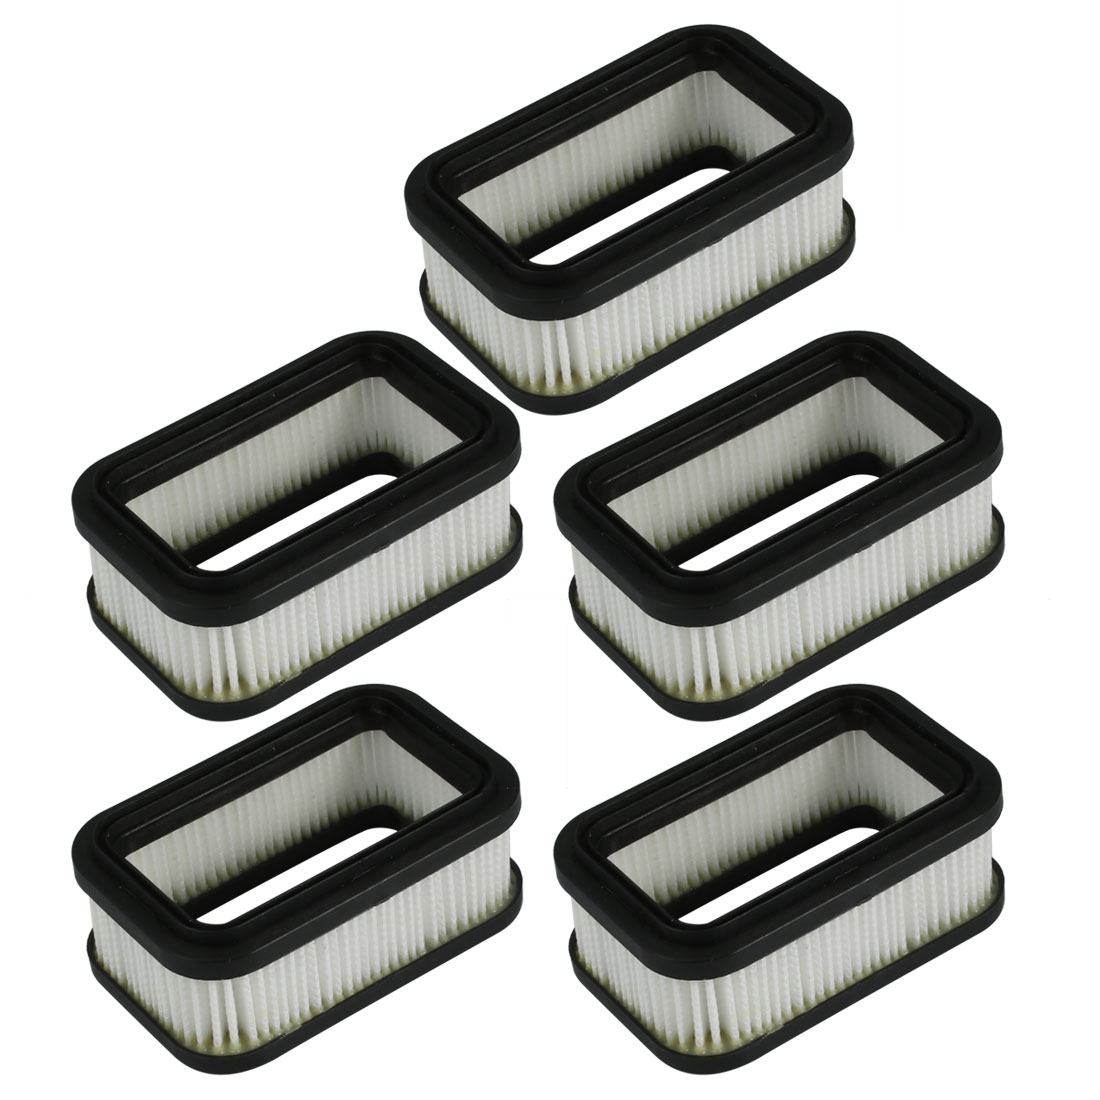 5pcs Replacement Parts 45 Lengthen Extra Guard Rigid Panel Air Filter Cleaner